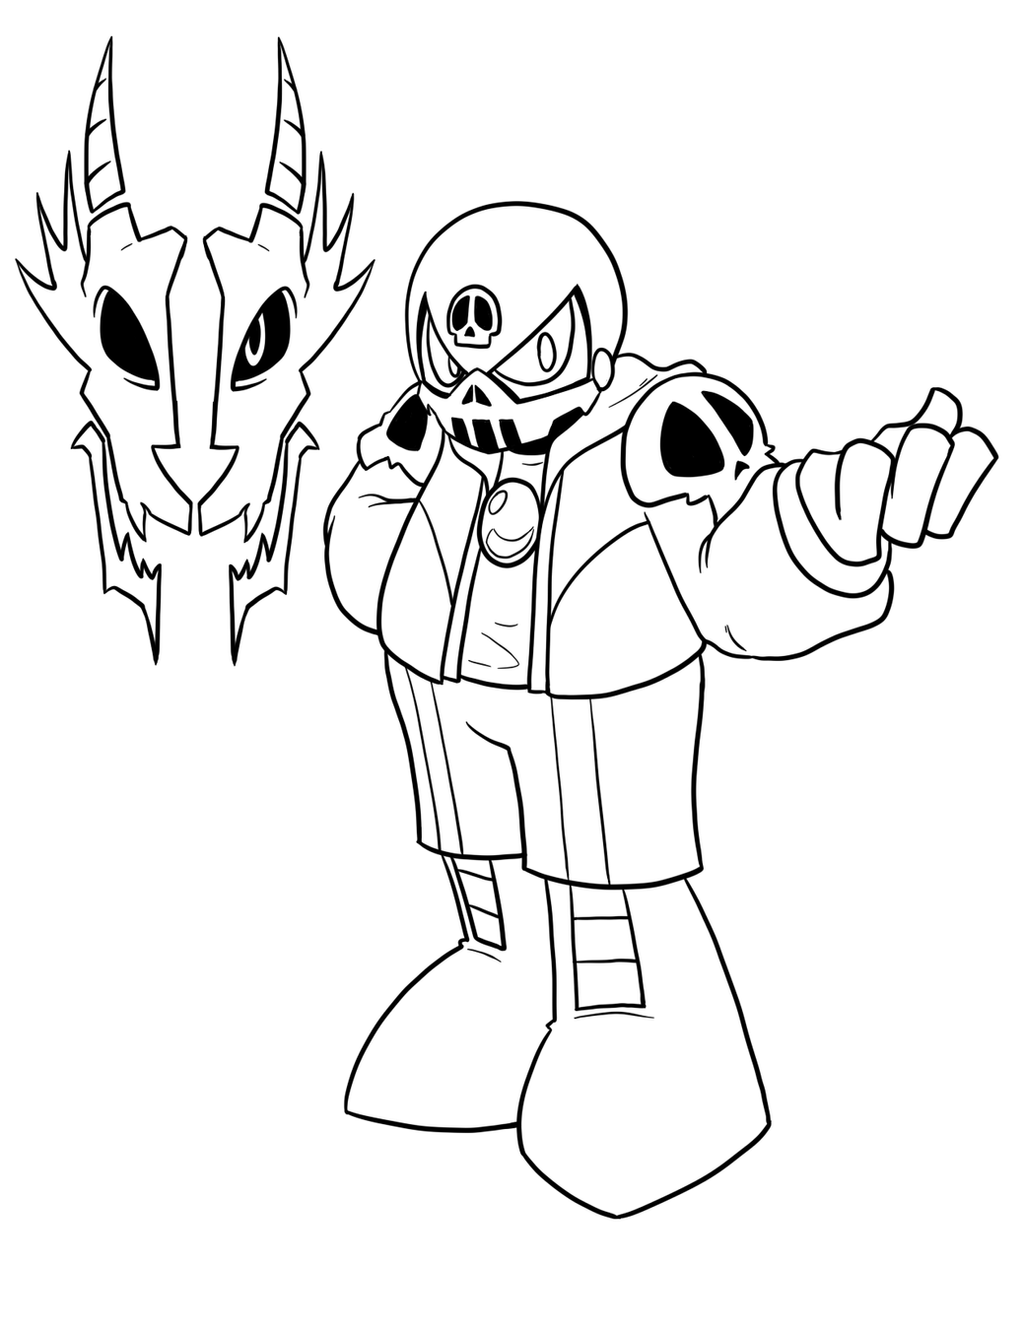 sans undertale coloring pages - skull man sans by inkwell pony on deviantart